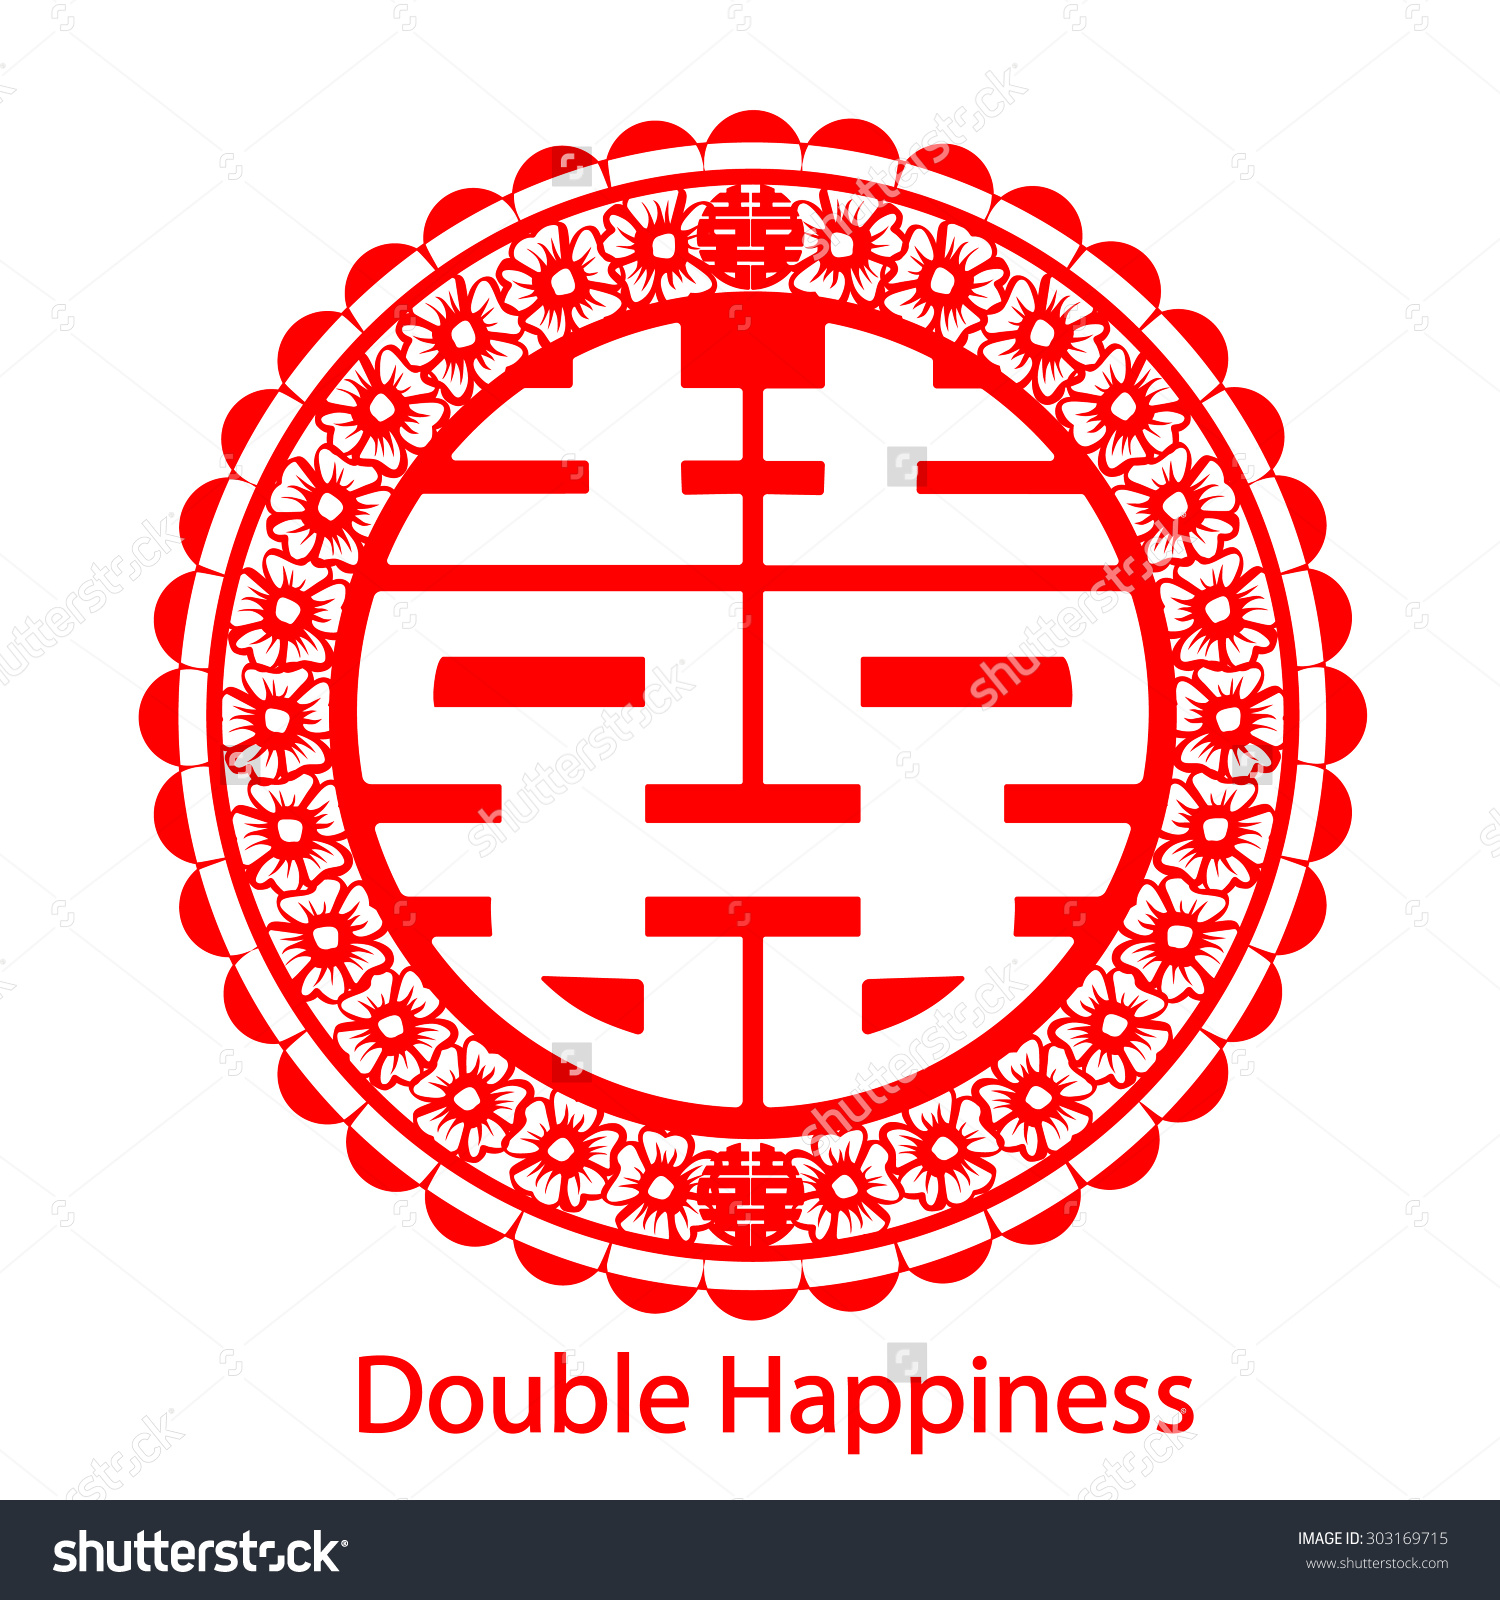 Double happiness clipart free png black and white library Double happiness clipart free - ClipartFest png black and white library